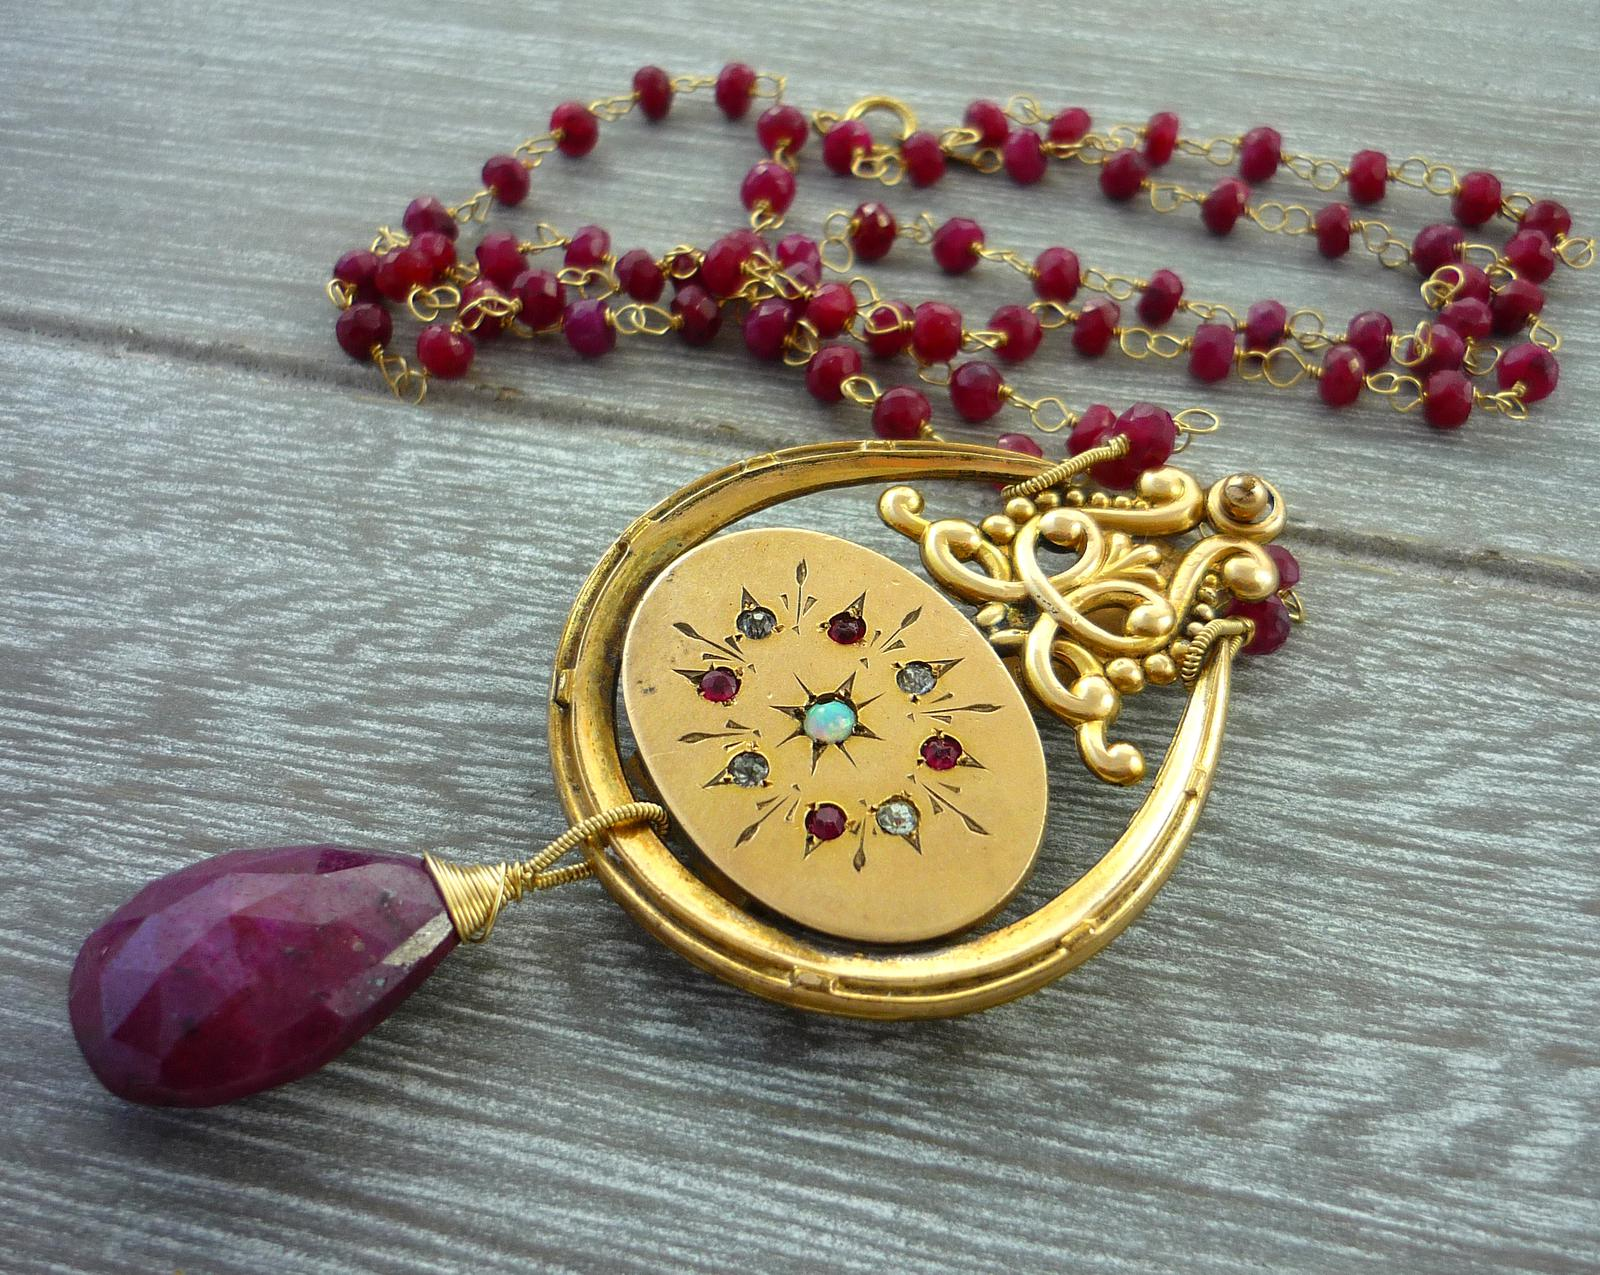 Antique jewelled fob charn, ruby briolette, ruby rondelles and 14kt gold wire